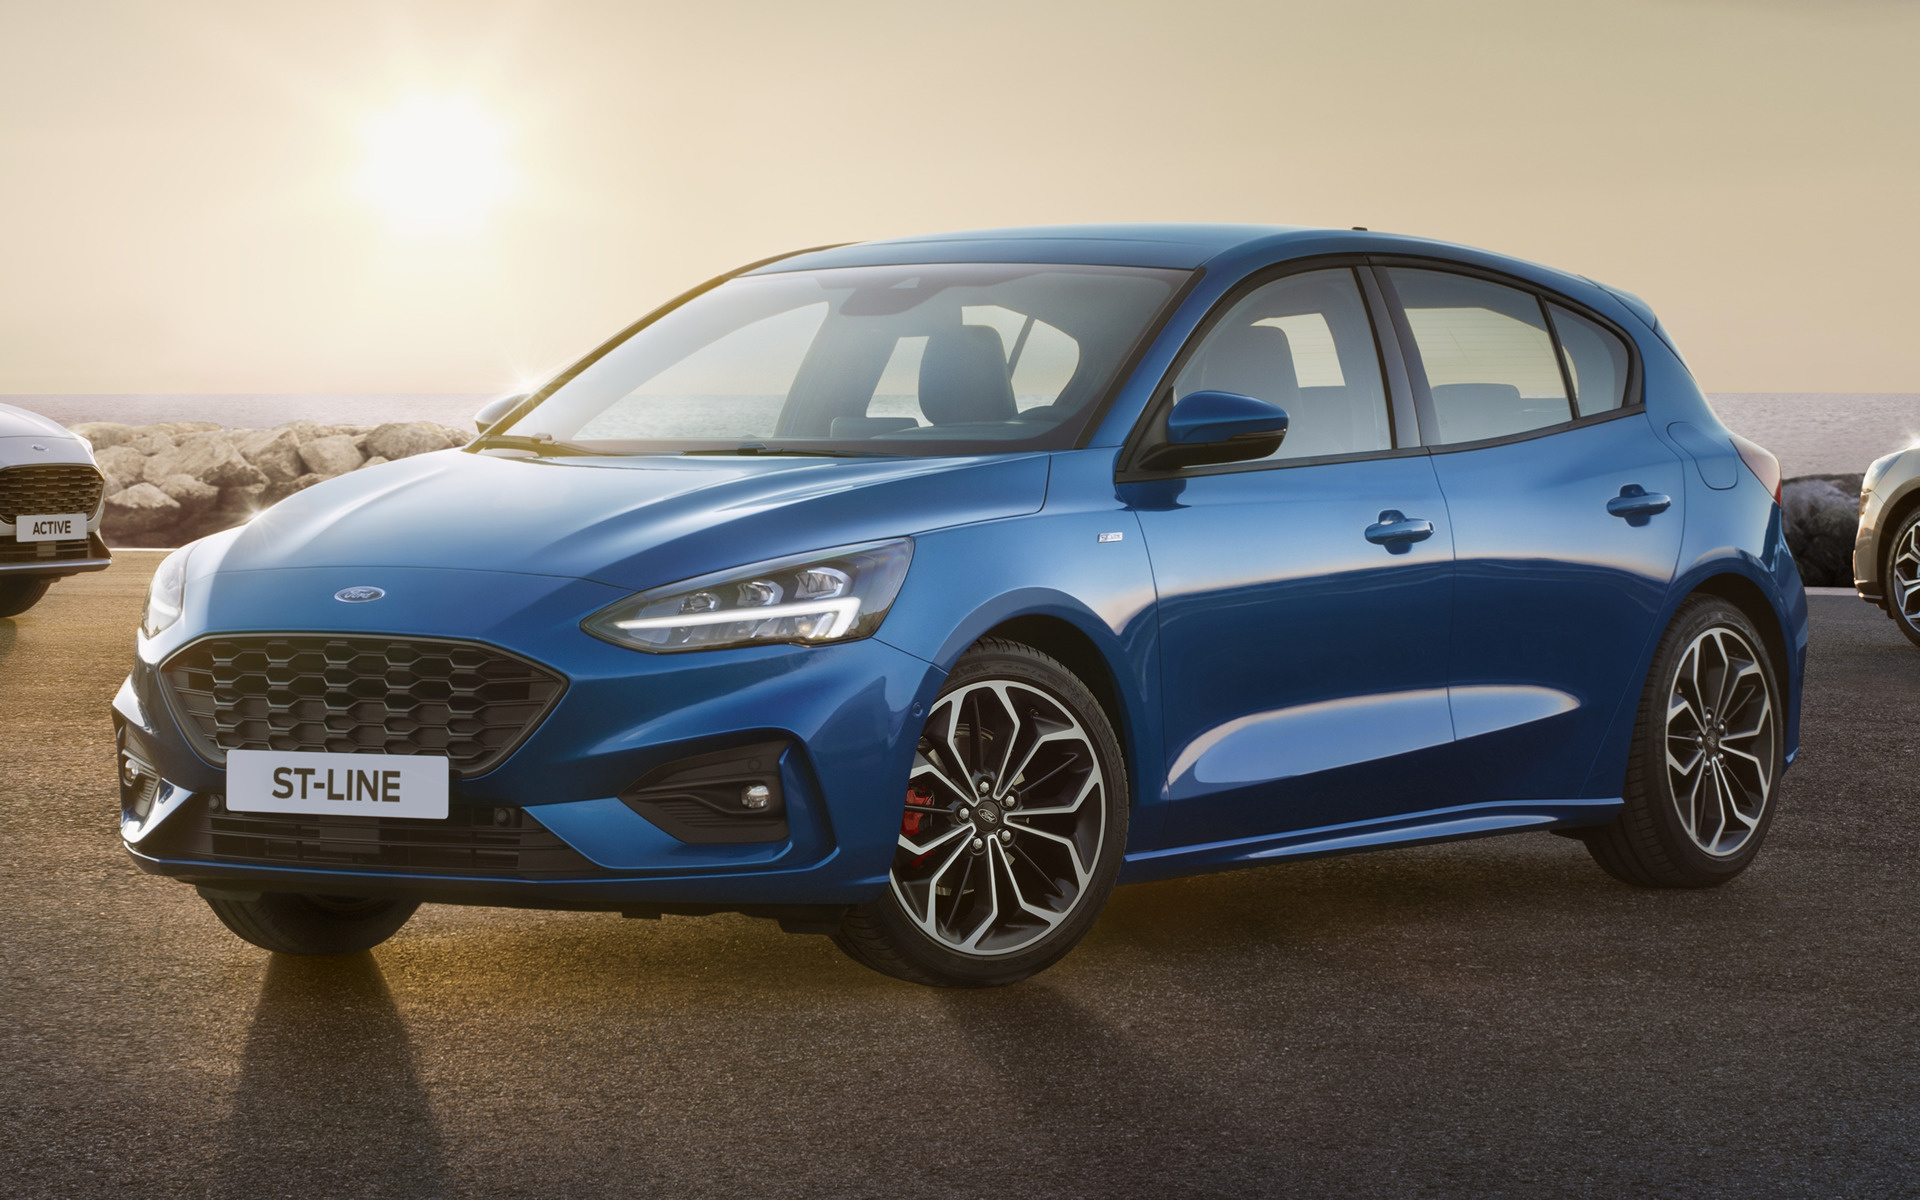 Ford Focus ST-Line (2018) Wallpapers and HD Images - Car Pixel